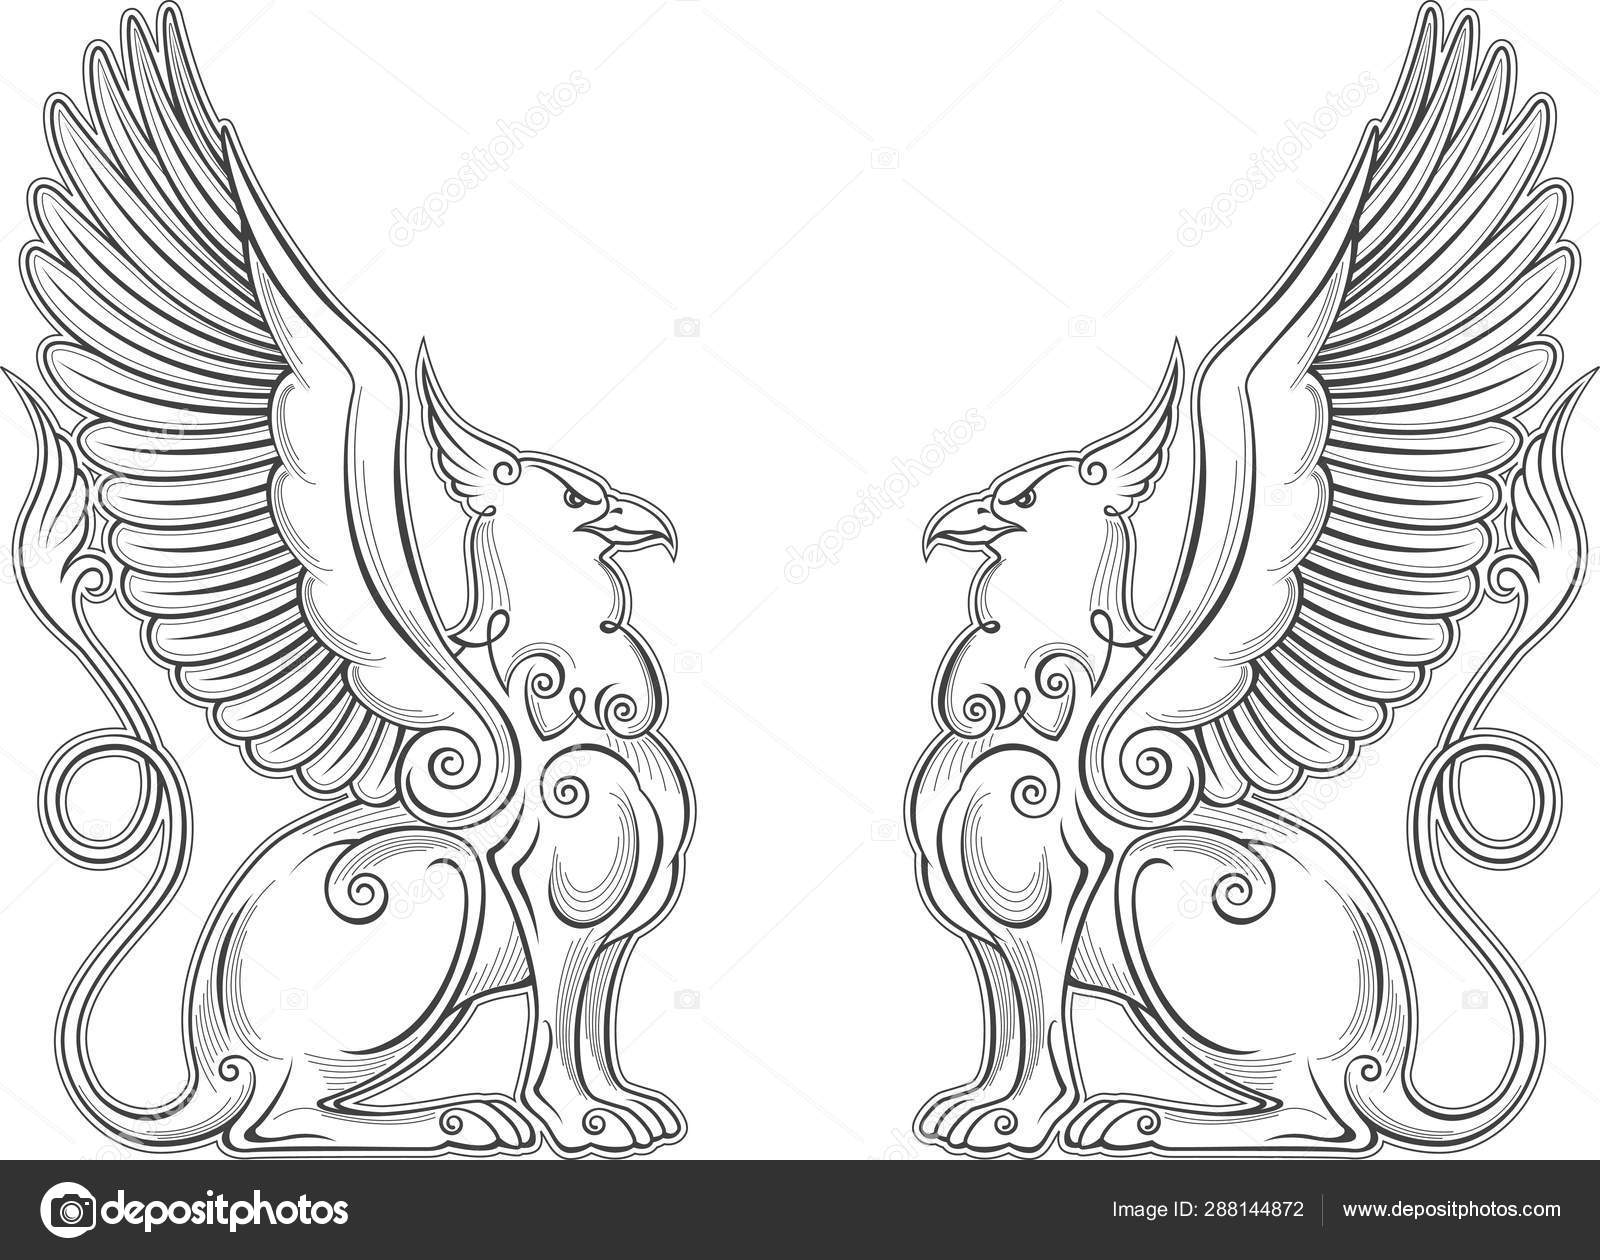 Gryphon mythical creature power and strength symbol vector